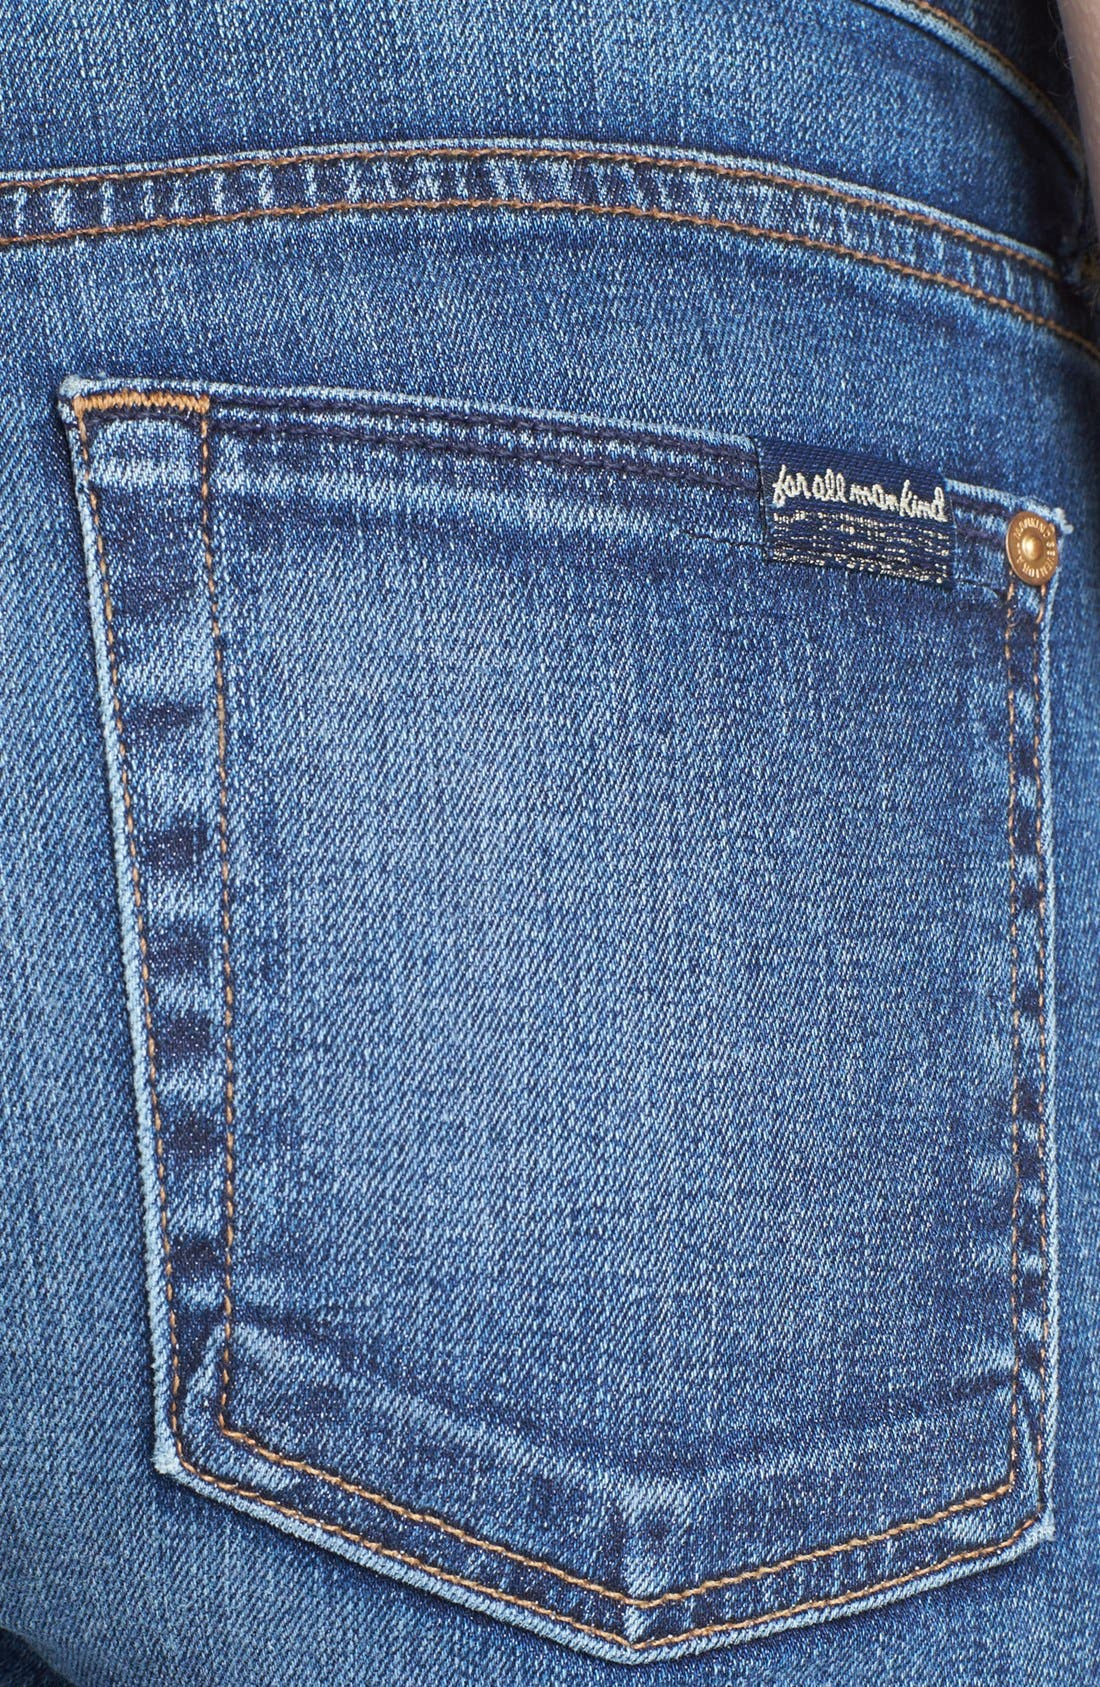 Alternate Image 3  - 7 For All Mankind® 'The Skinny' Bootcut Jeans (Rue de Lille)